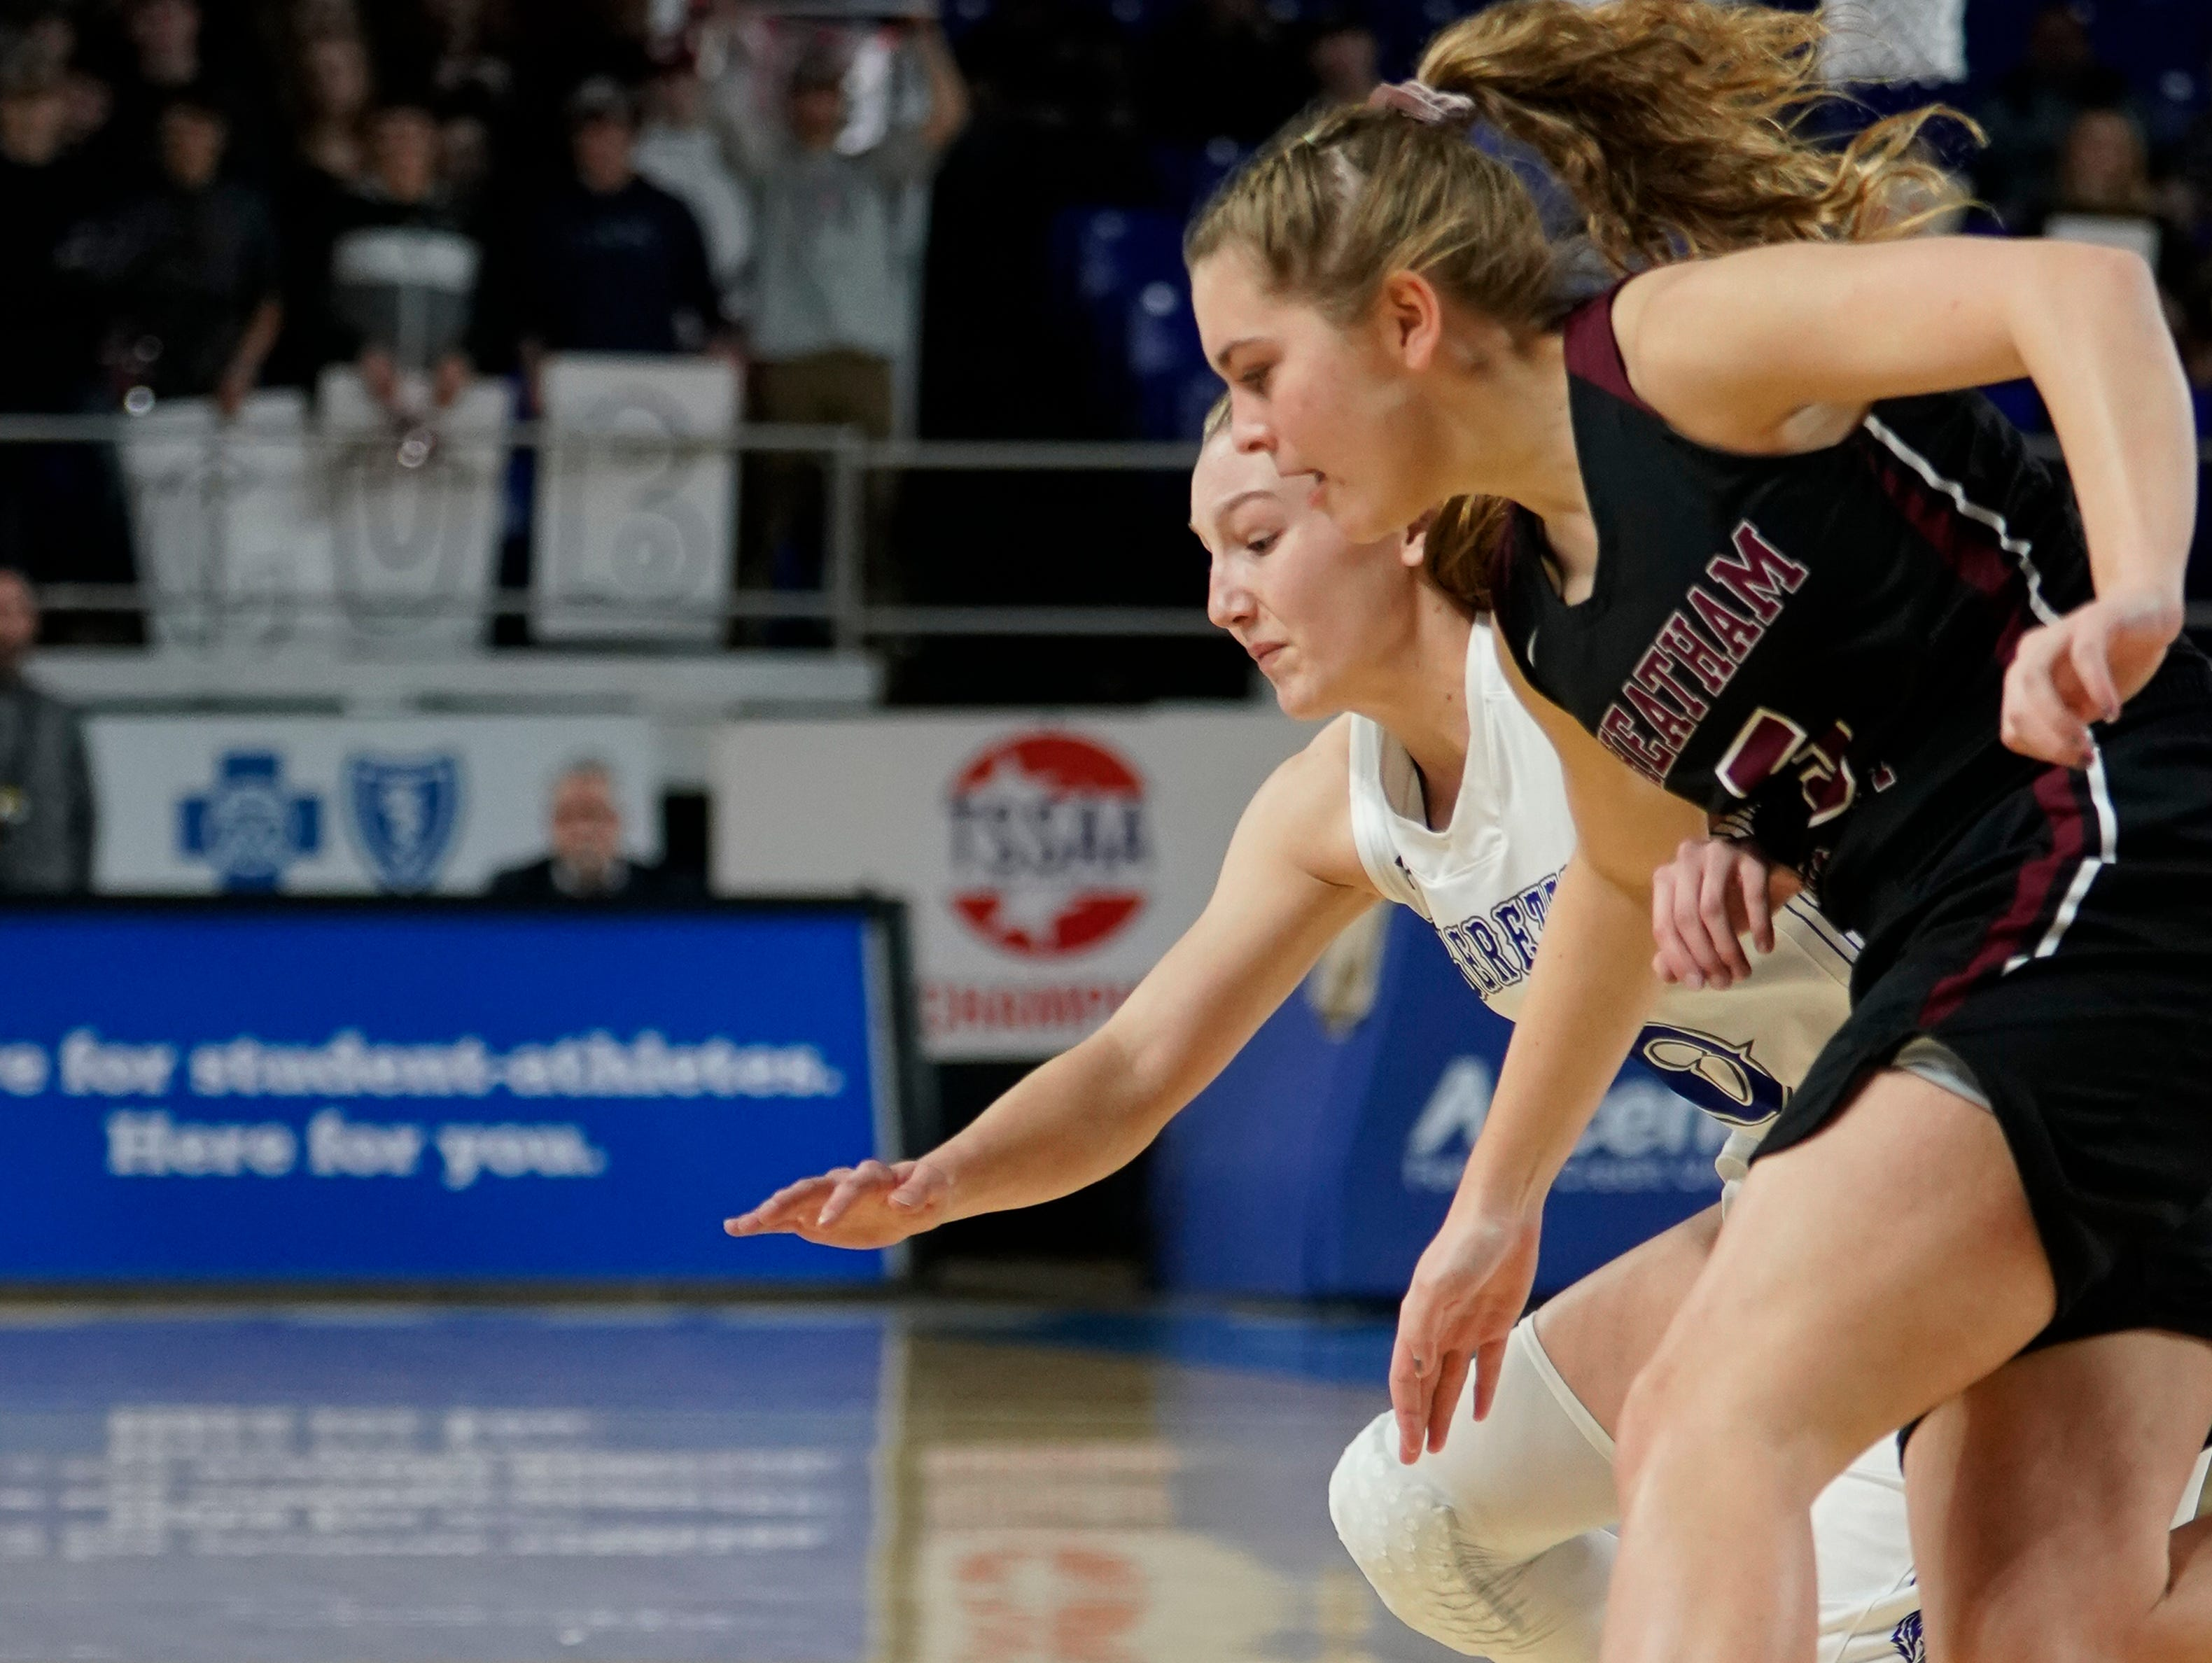 Macon Co. guard Jalynn Gregory (10) and Cheatham Co. guard Eryn Nelson (5) dive for a loose ball during the first half of their semifinal game in the Division I Class AA Girls TSSAA Girls State Championships at Murphy Center Friday, March 8, 2019 in Murfreesboro, Tenn.